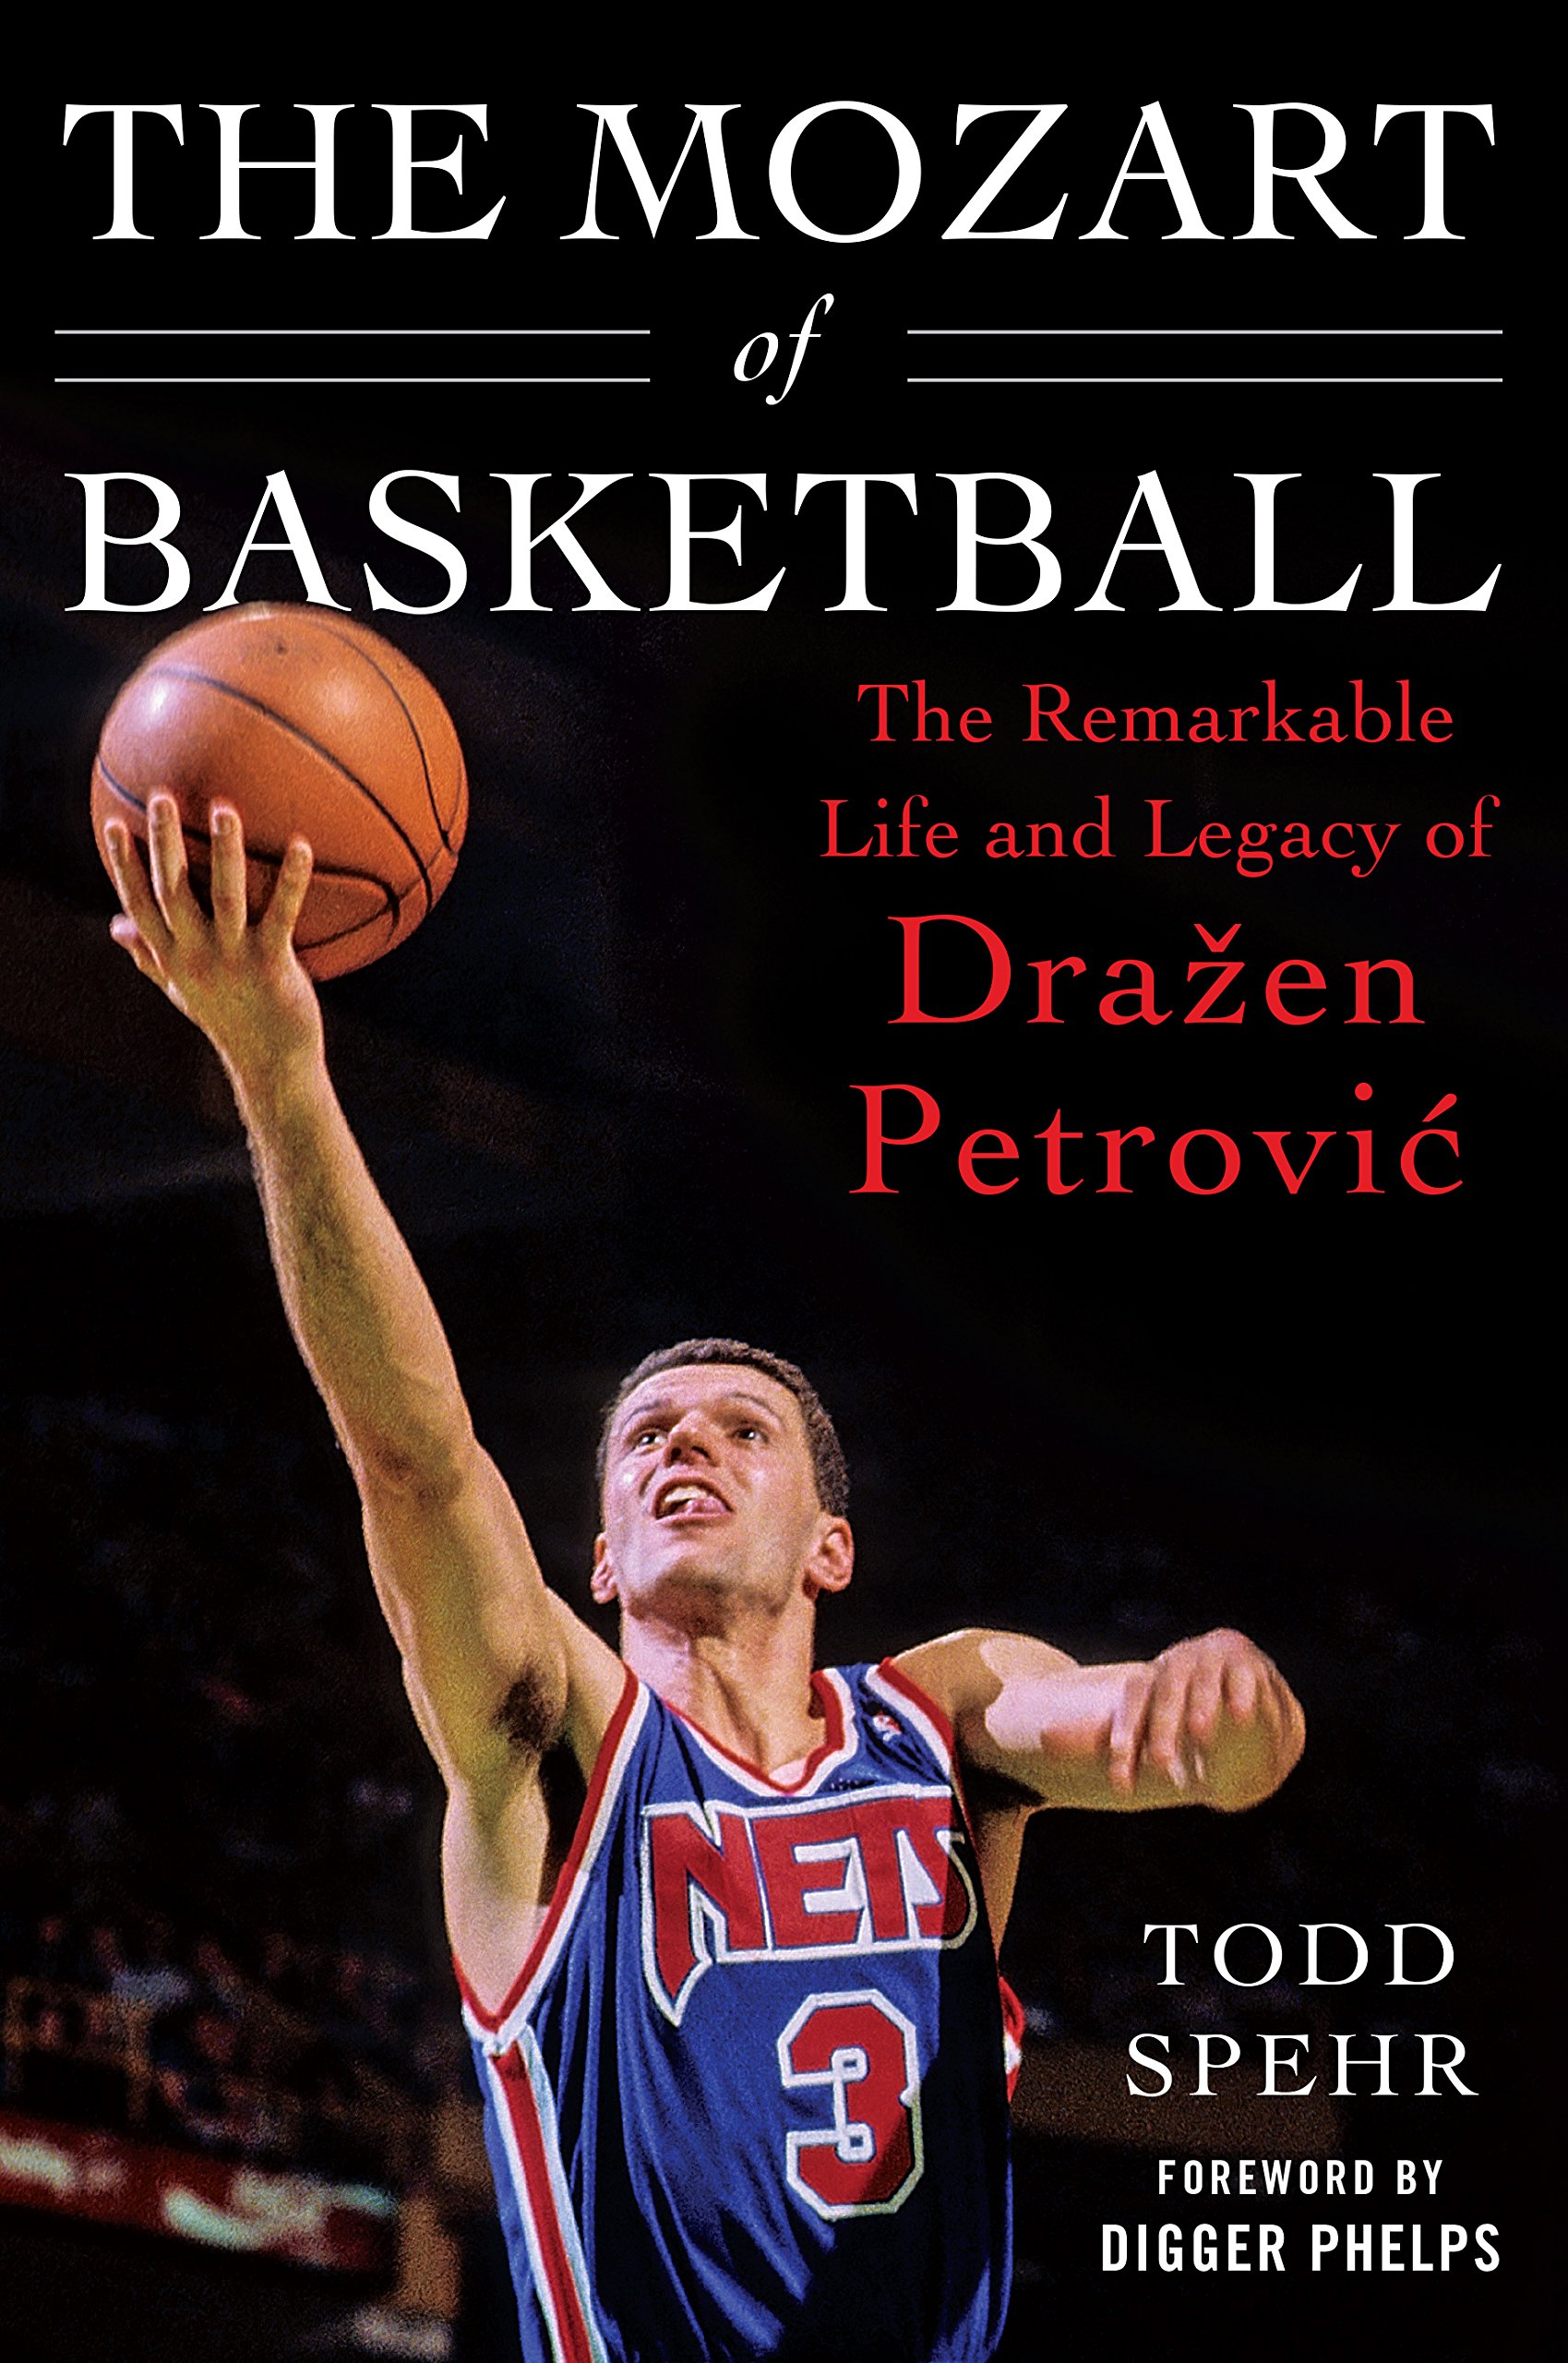 The Mozart of Basketball: The Remarkable Life and Legacy of Dražen Petrovic: Amazon.es: Todd Spehr, Digger Phelps: Libros en idiomas extranjeros